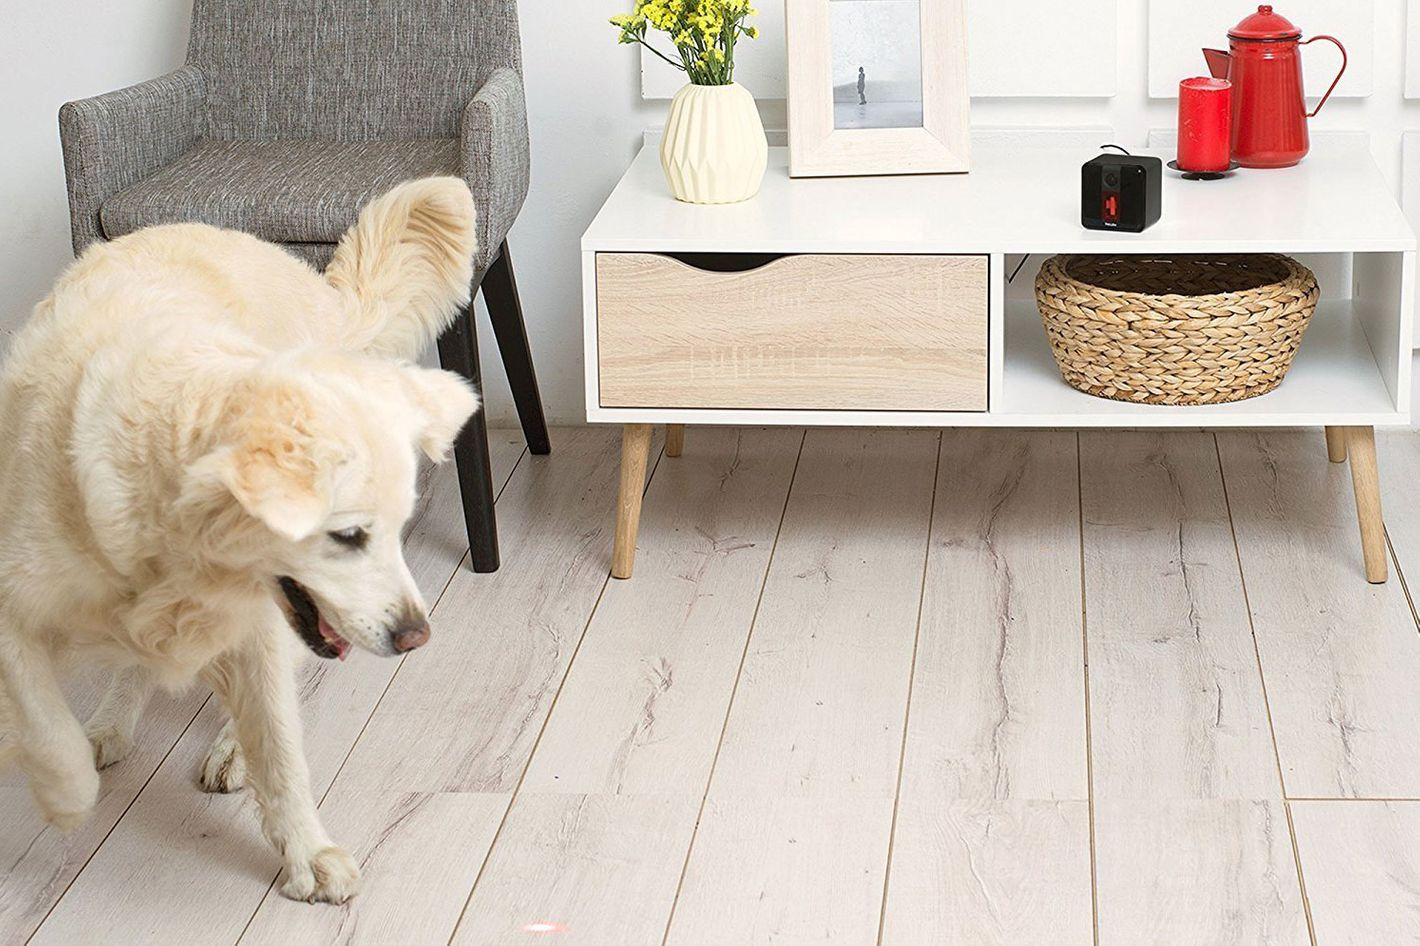 Petcube Play Wi-Fi Pet Camera